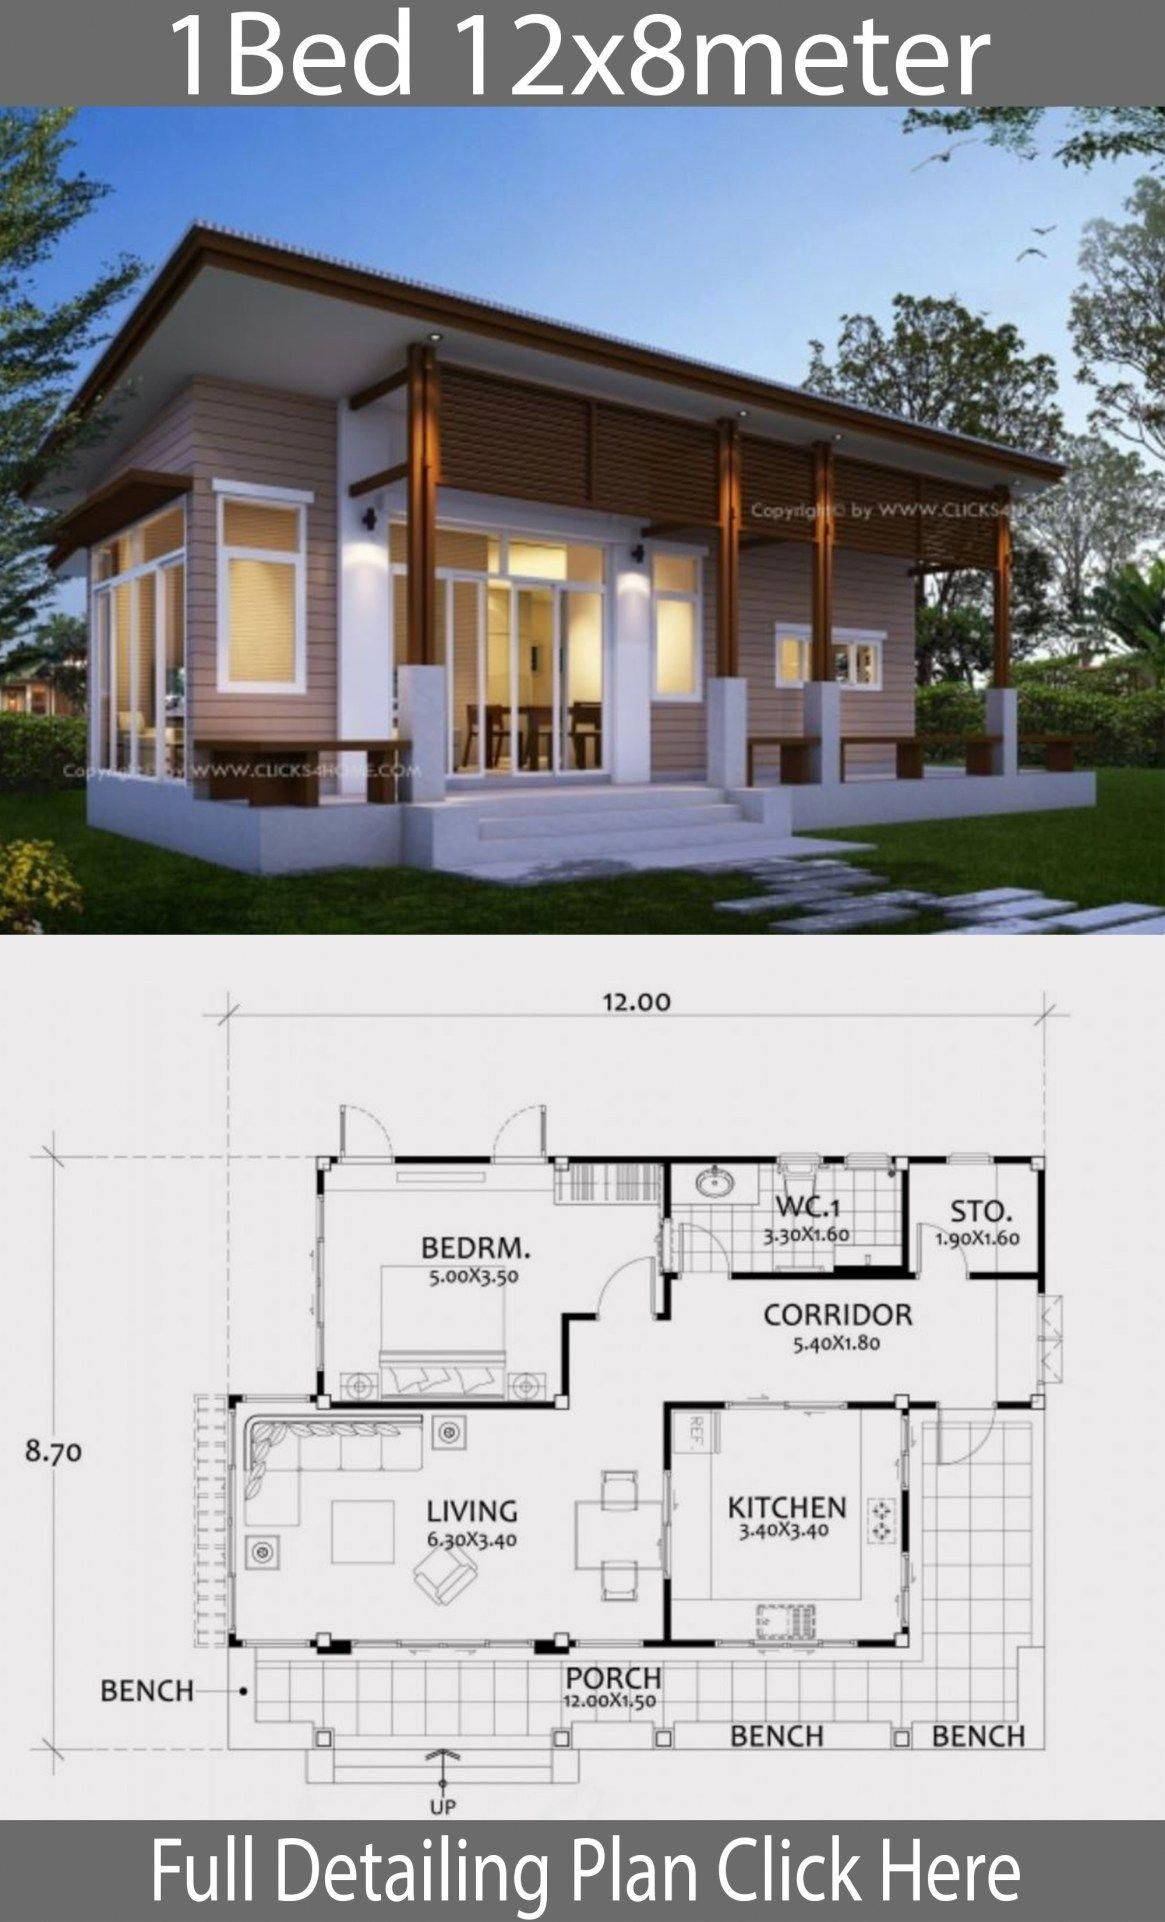 Home Design Plan 12x8m With One Bedroom Home Design With Plansearch Aframehome House Design Home Design Plan Bedroom House Plans